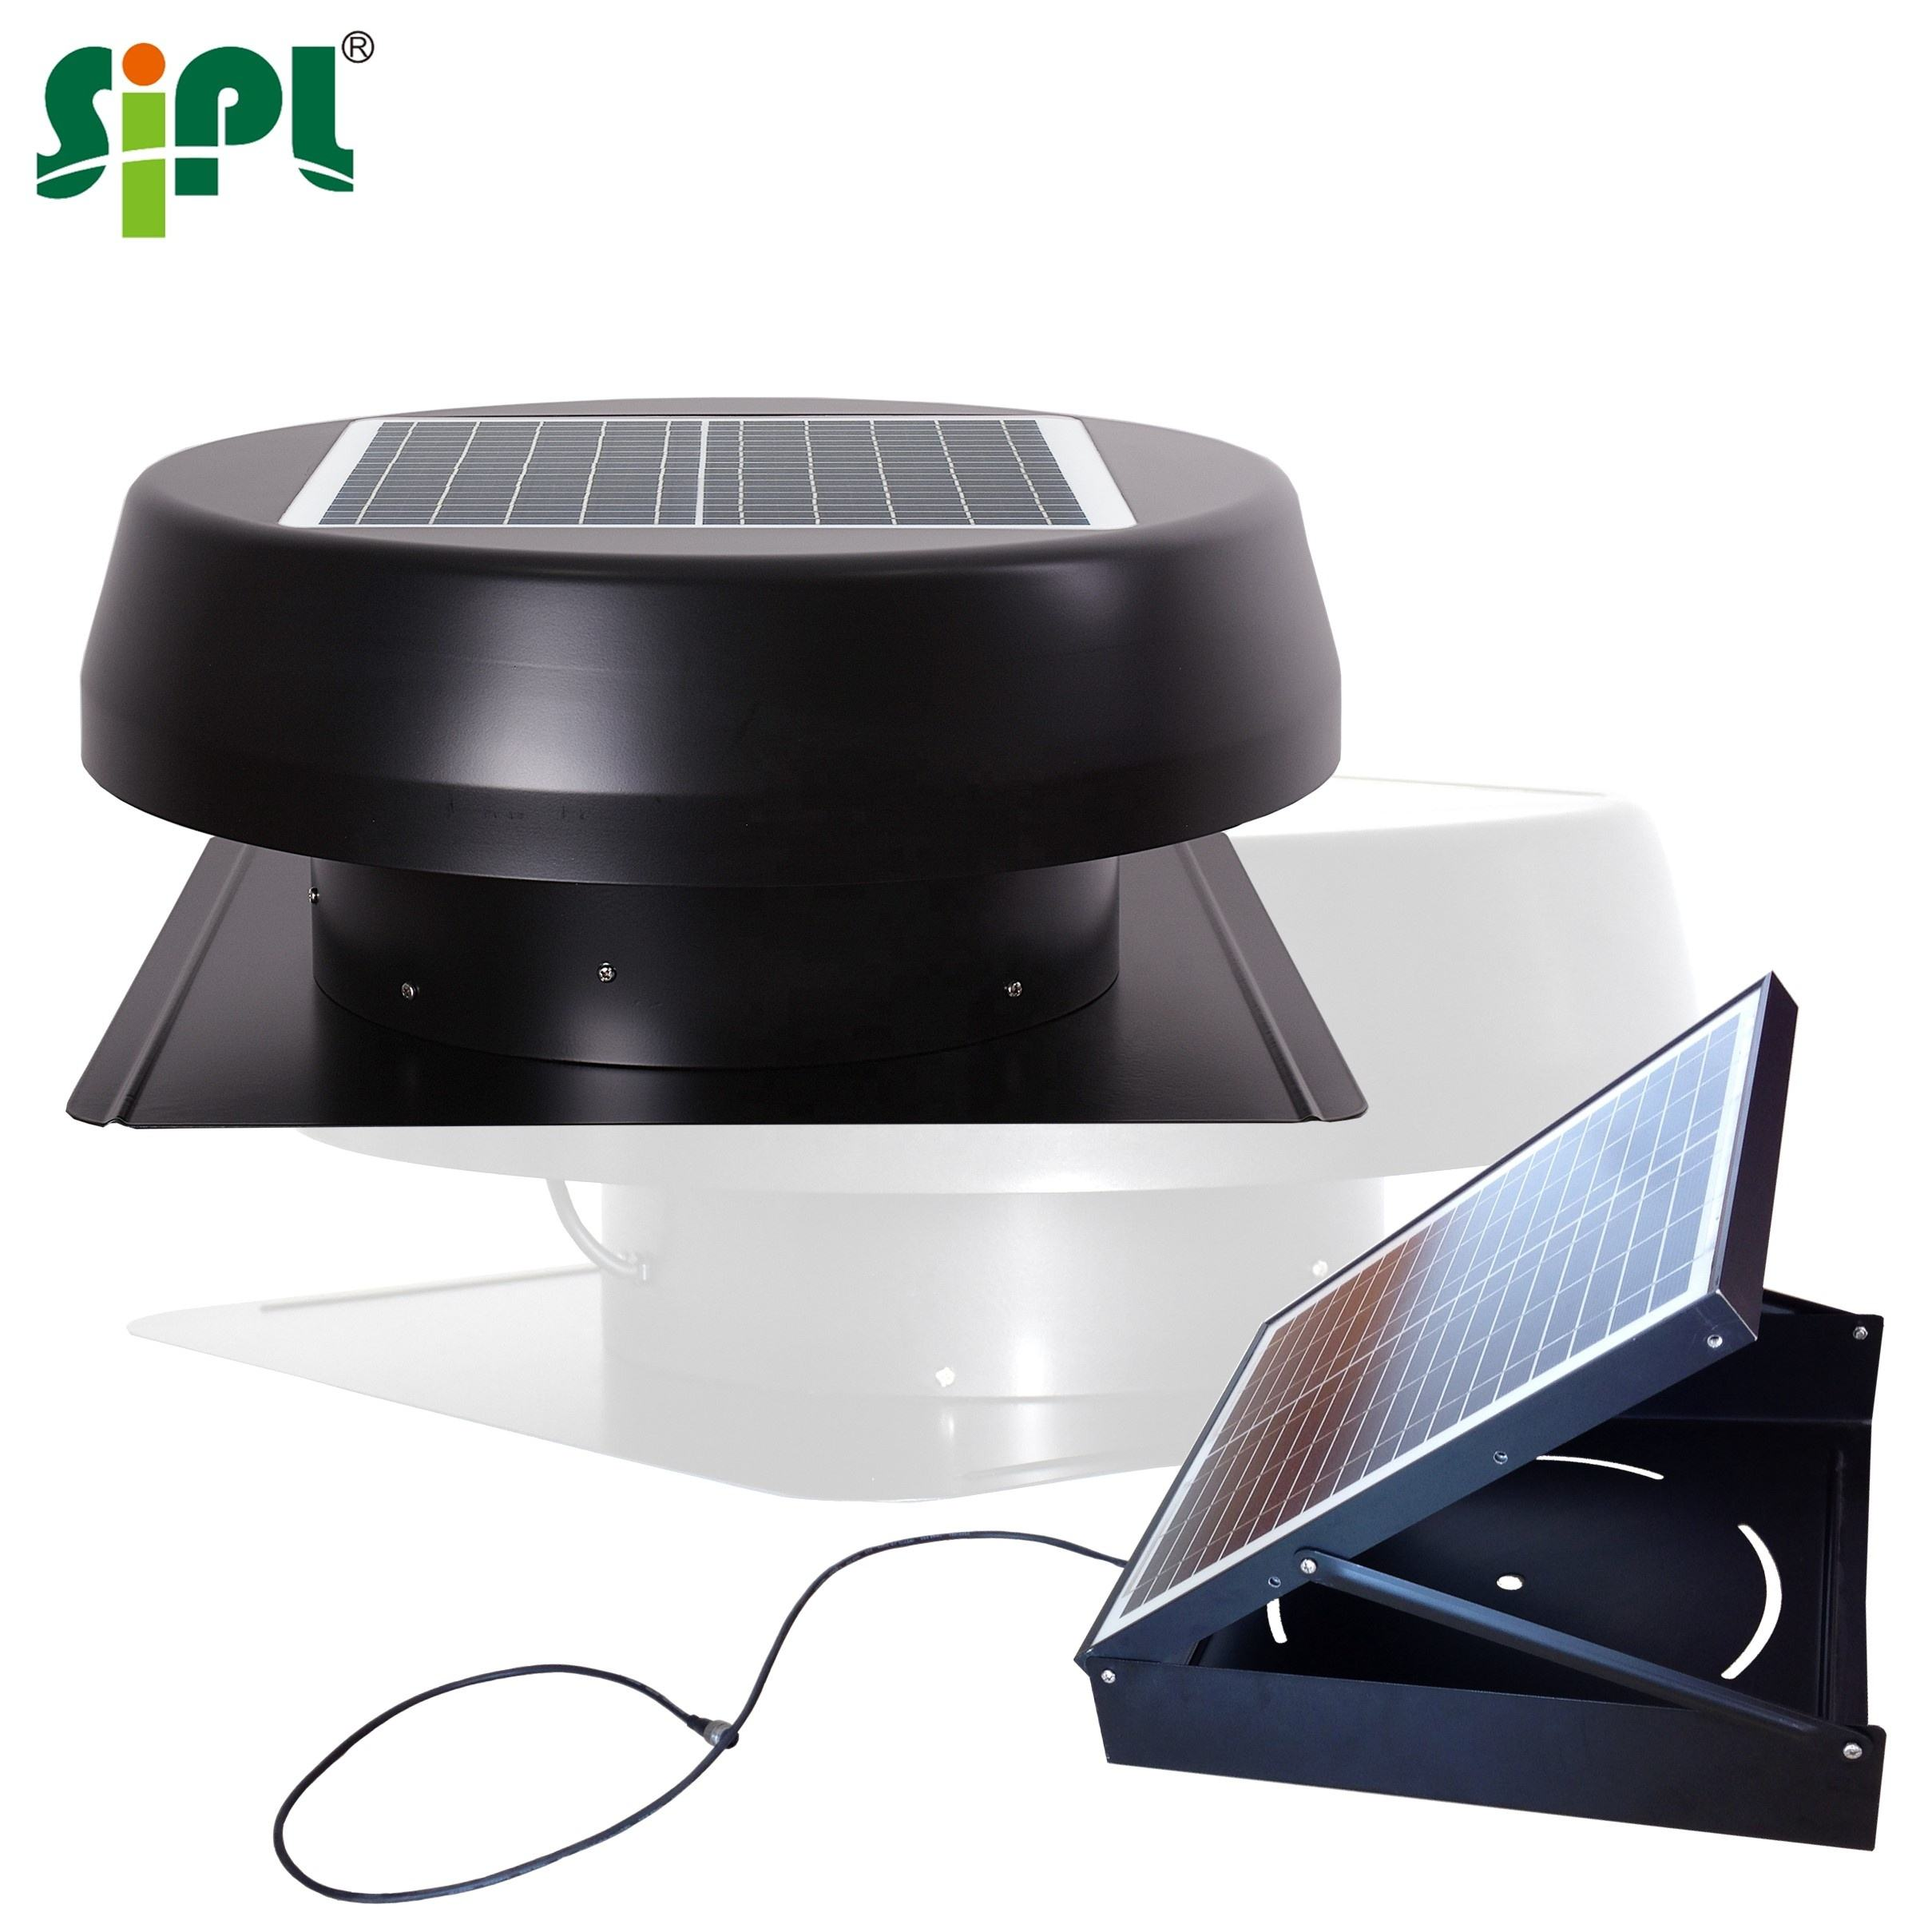 Eco Vent Tools Sunny Solar Battery Powered Home Ventilation HVAC System Auto Heat Extraction Air Circulation Attic Fan Blower